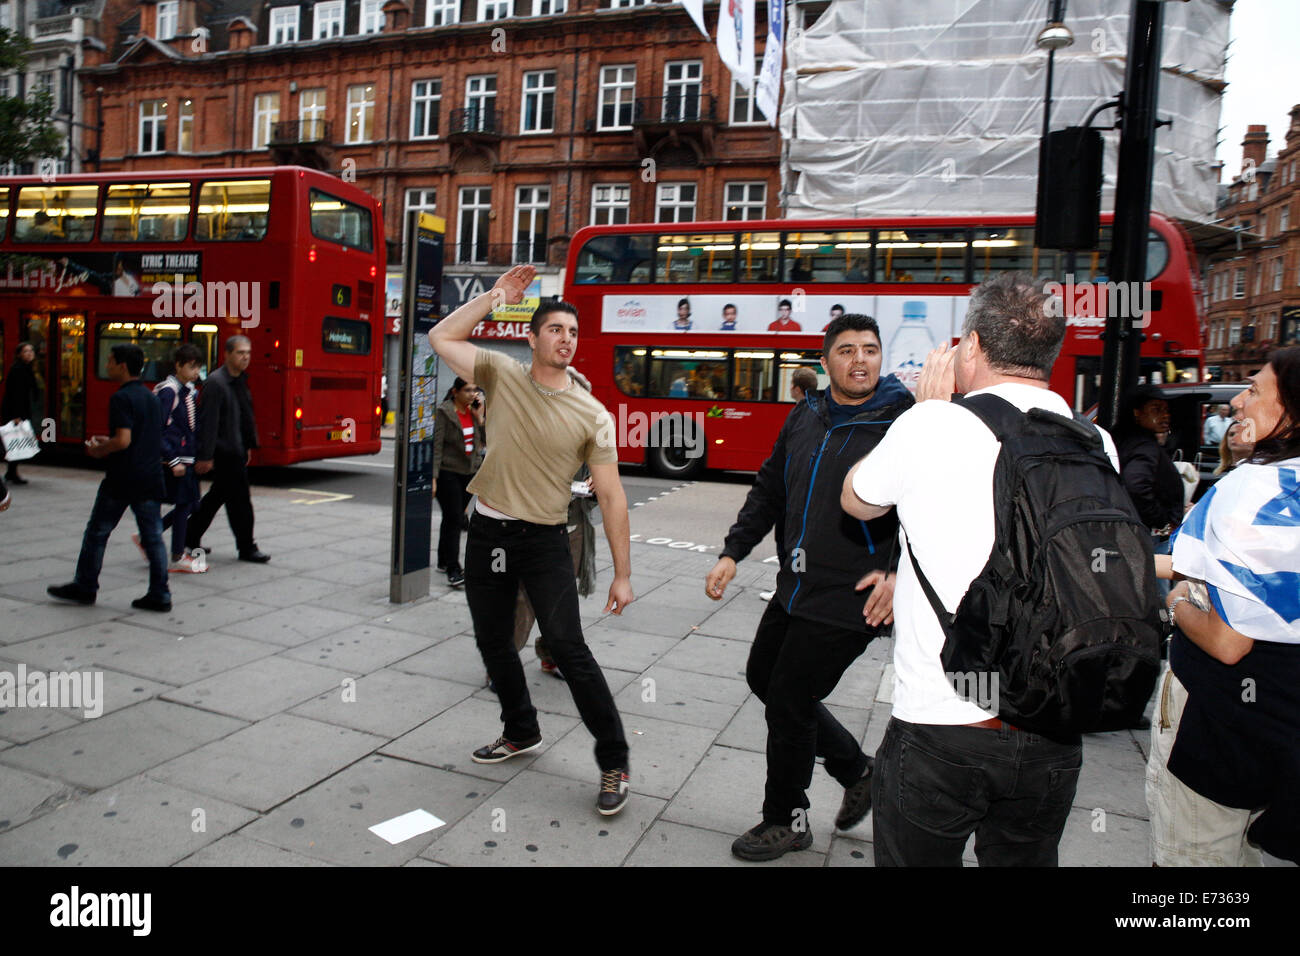 Oxford Street, London, UK, 4th September, 2014. Two men walking past pro-Israel counter protest to the boycott of - Stock Image